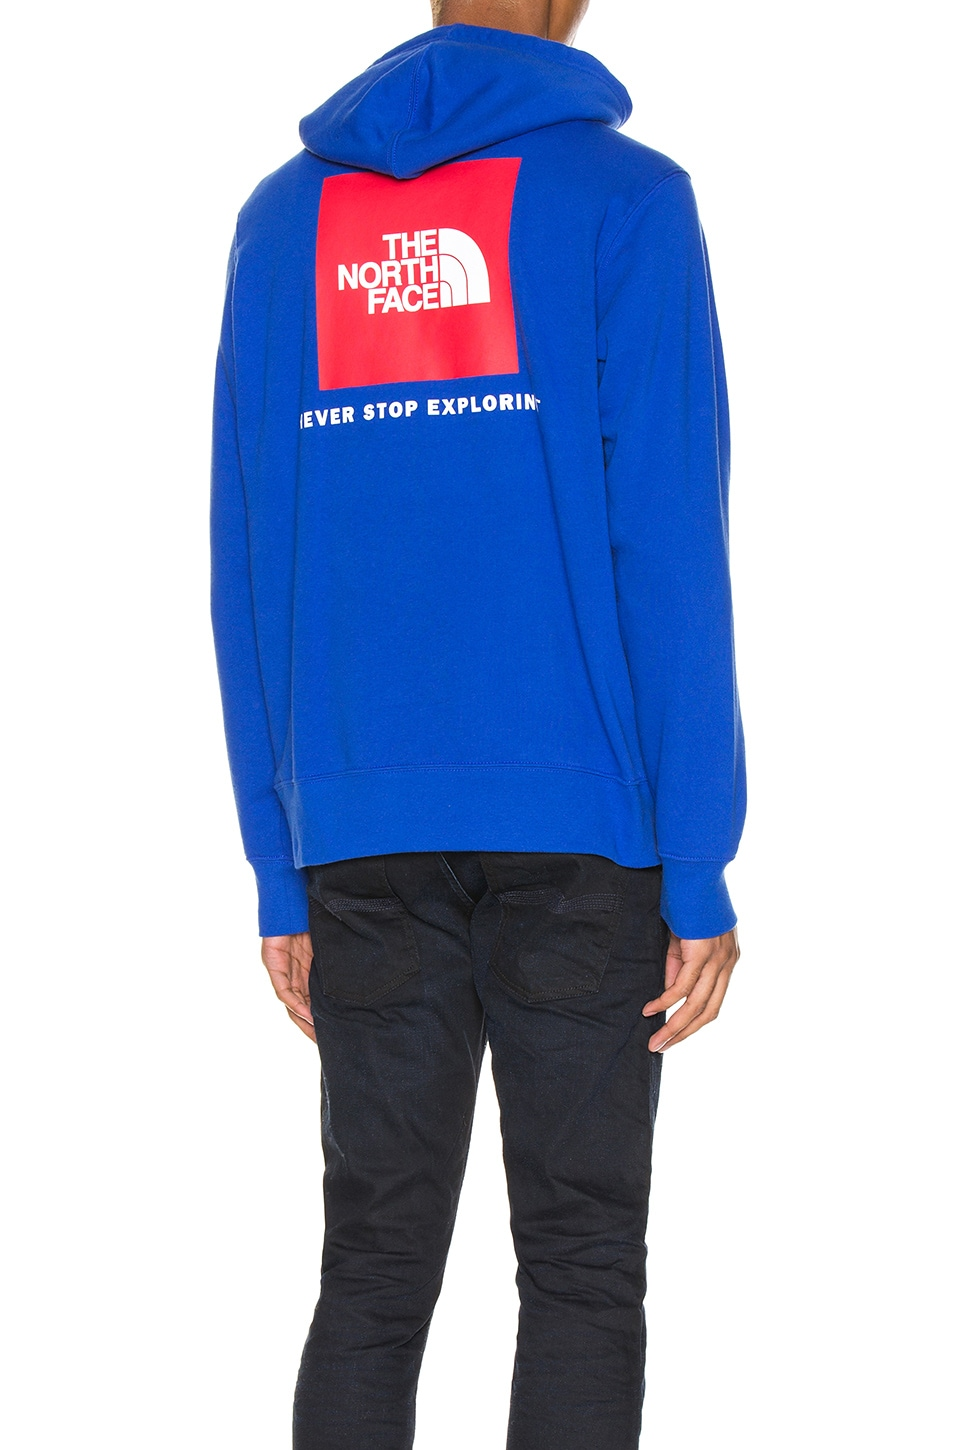 The North Face Red Box Pullover Hoodie in TNF Blue